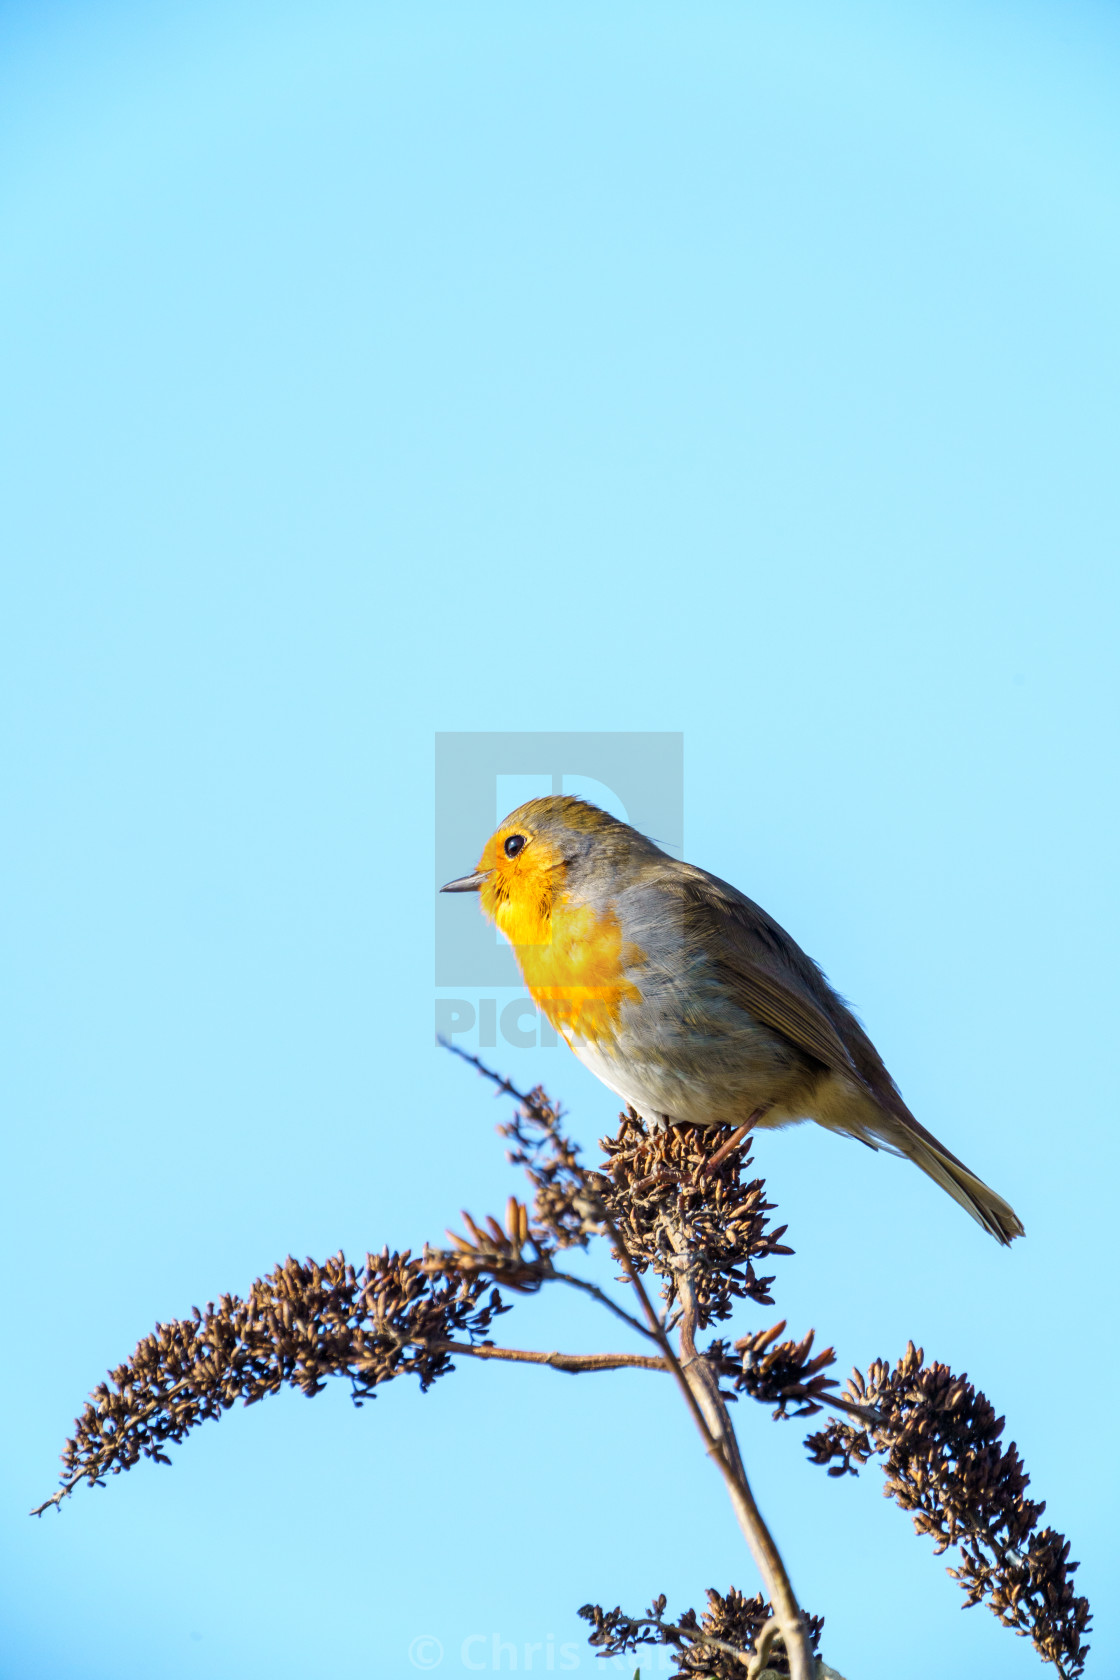 """European Robin (Erithacus rubecula) perched on a bush, taken in the UK"" stock image"